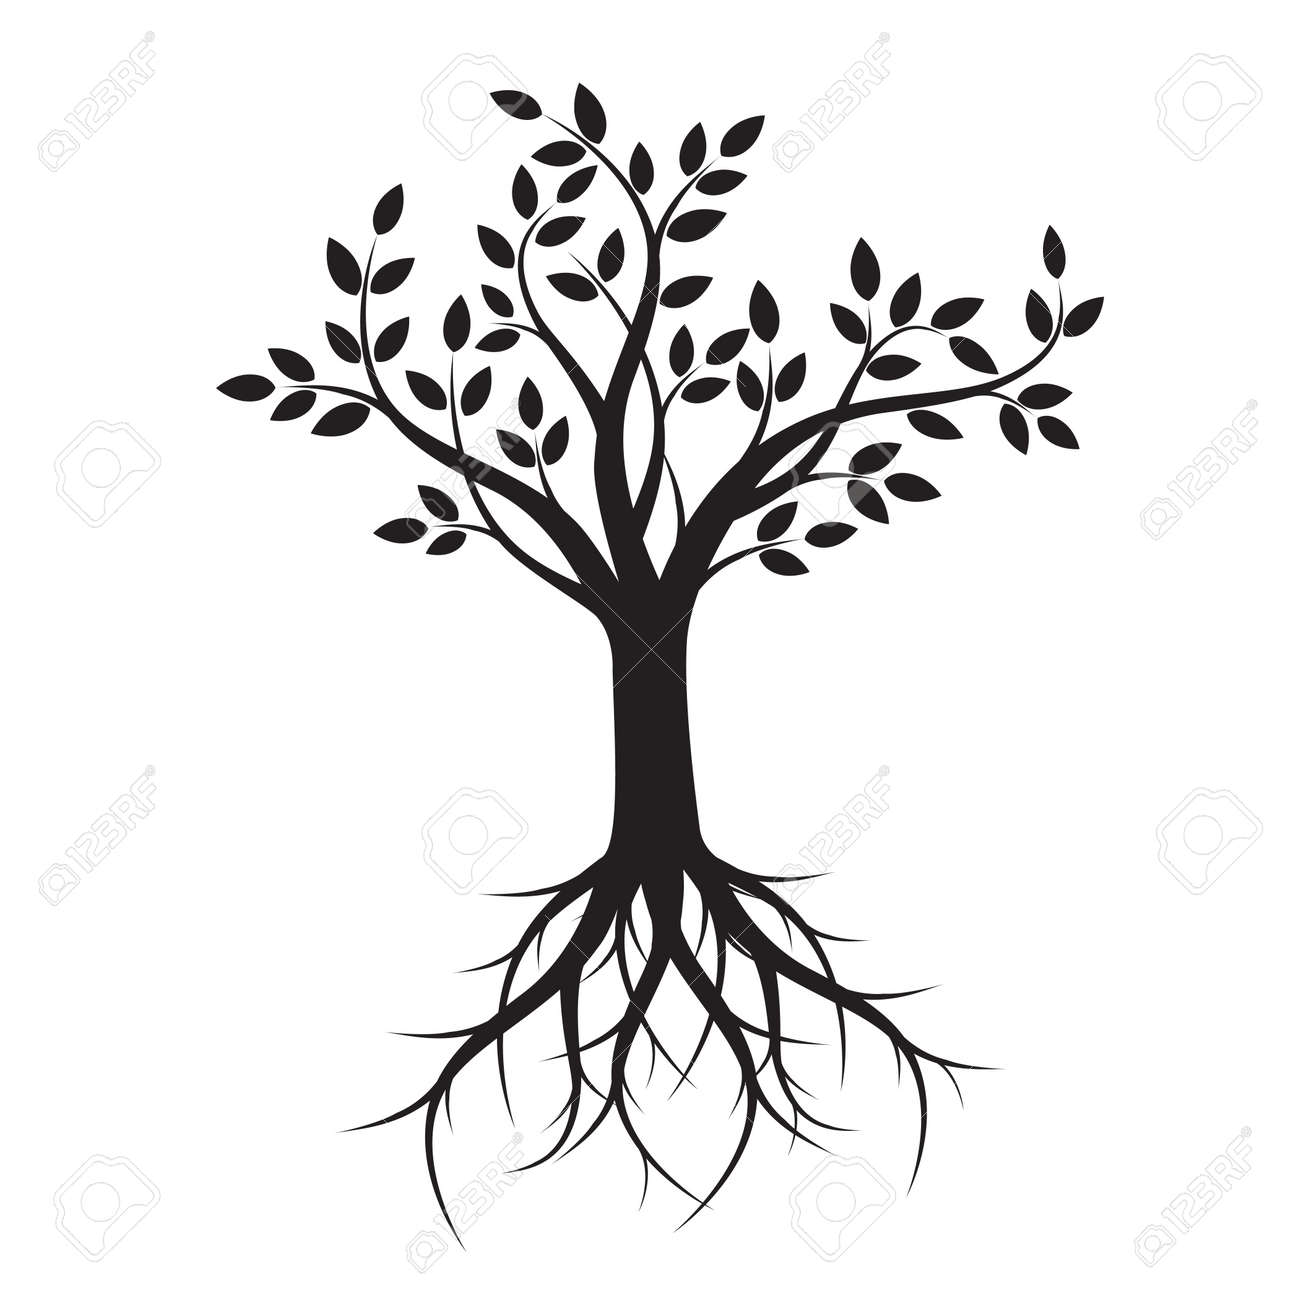 black tree with roots vector illustration royalty free cliparts rh 123rf com transparent tree with roots vector tree roots silhouette vector